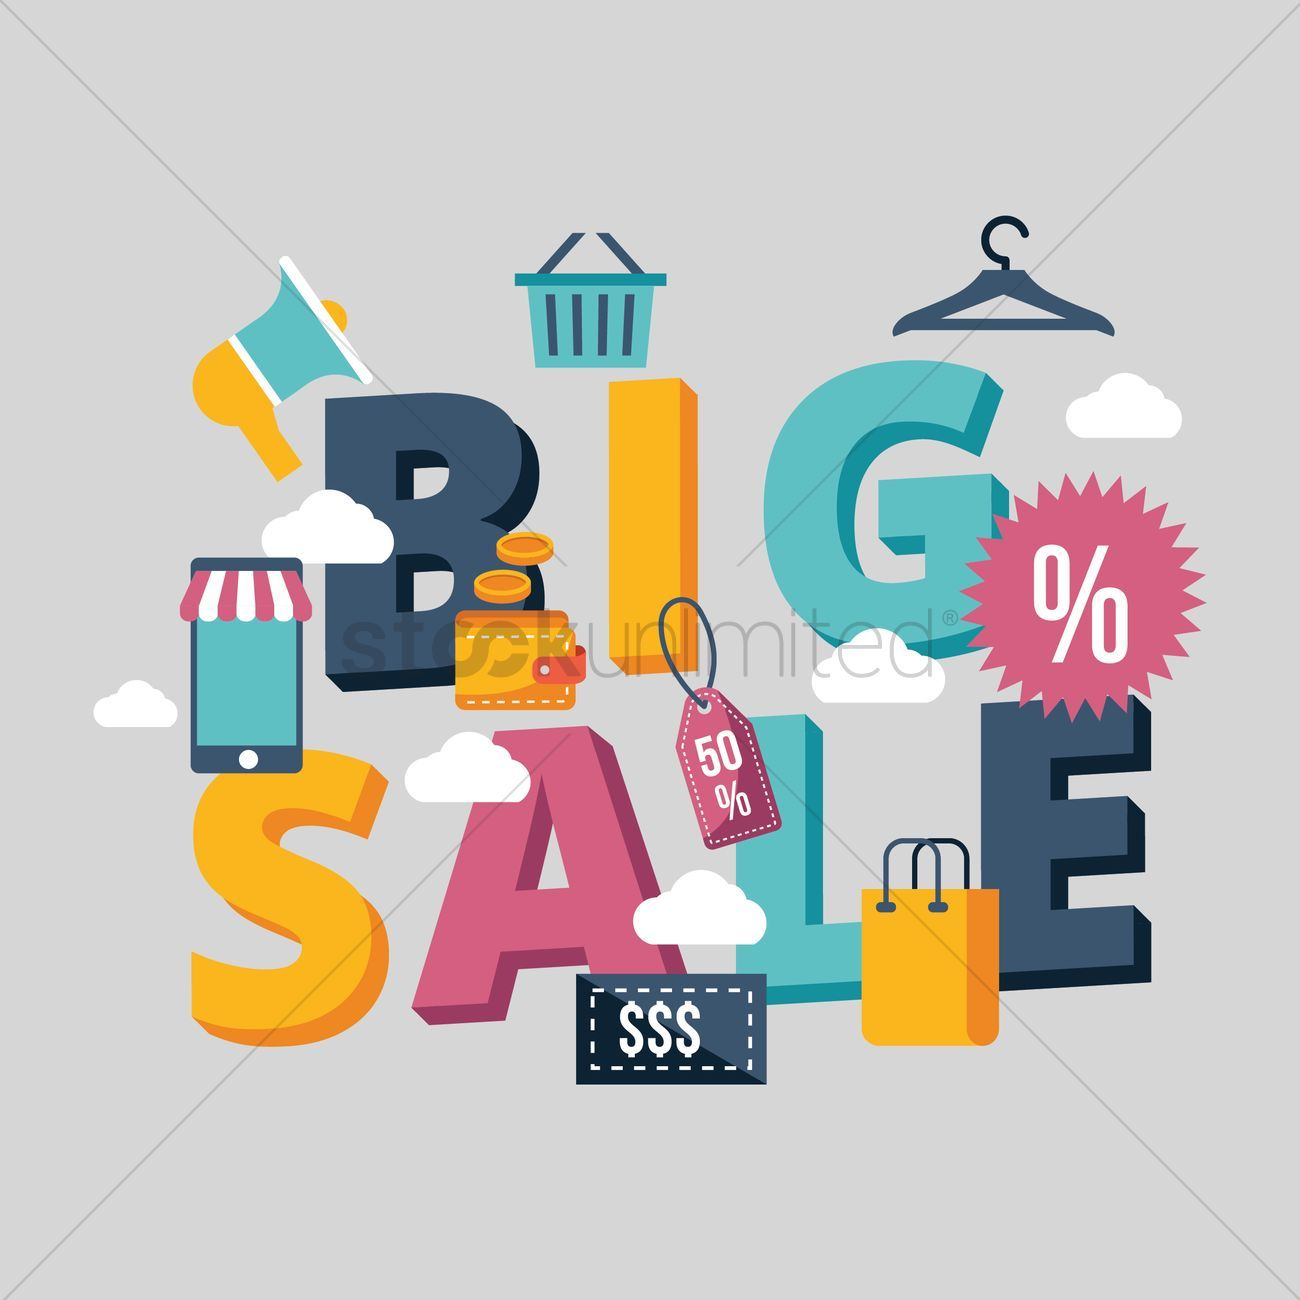 Big Sale Lettering Design Vectors Stock Clipart Sponsored Lettering Sale Big Design Clipart Affil Web Design Services Marketing Trends Ecommerce